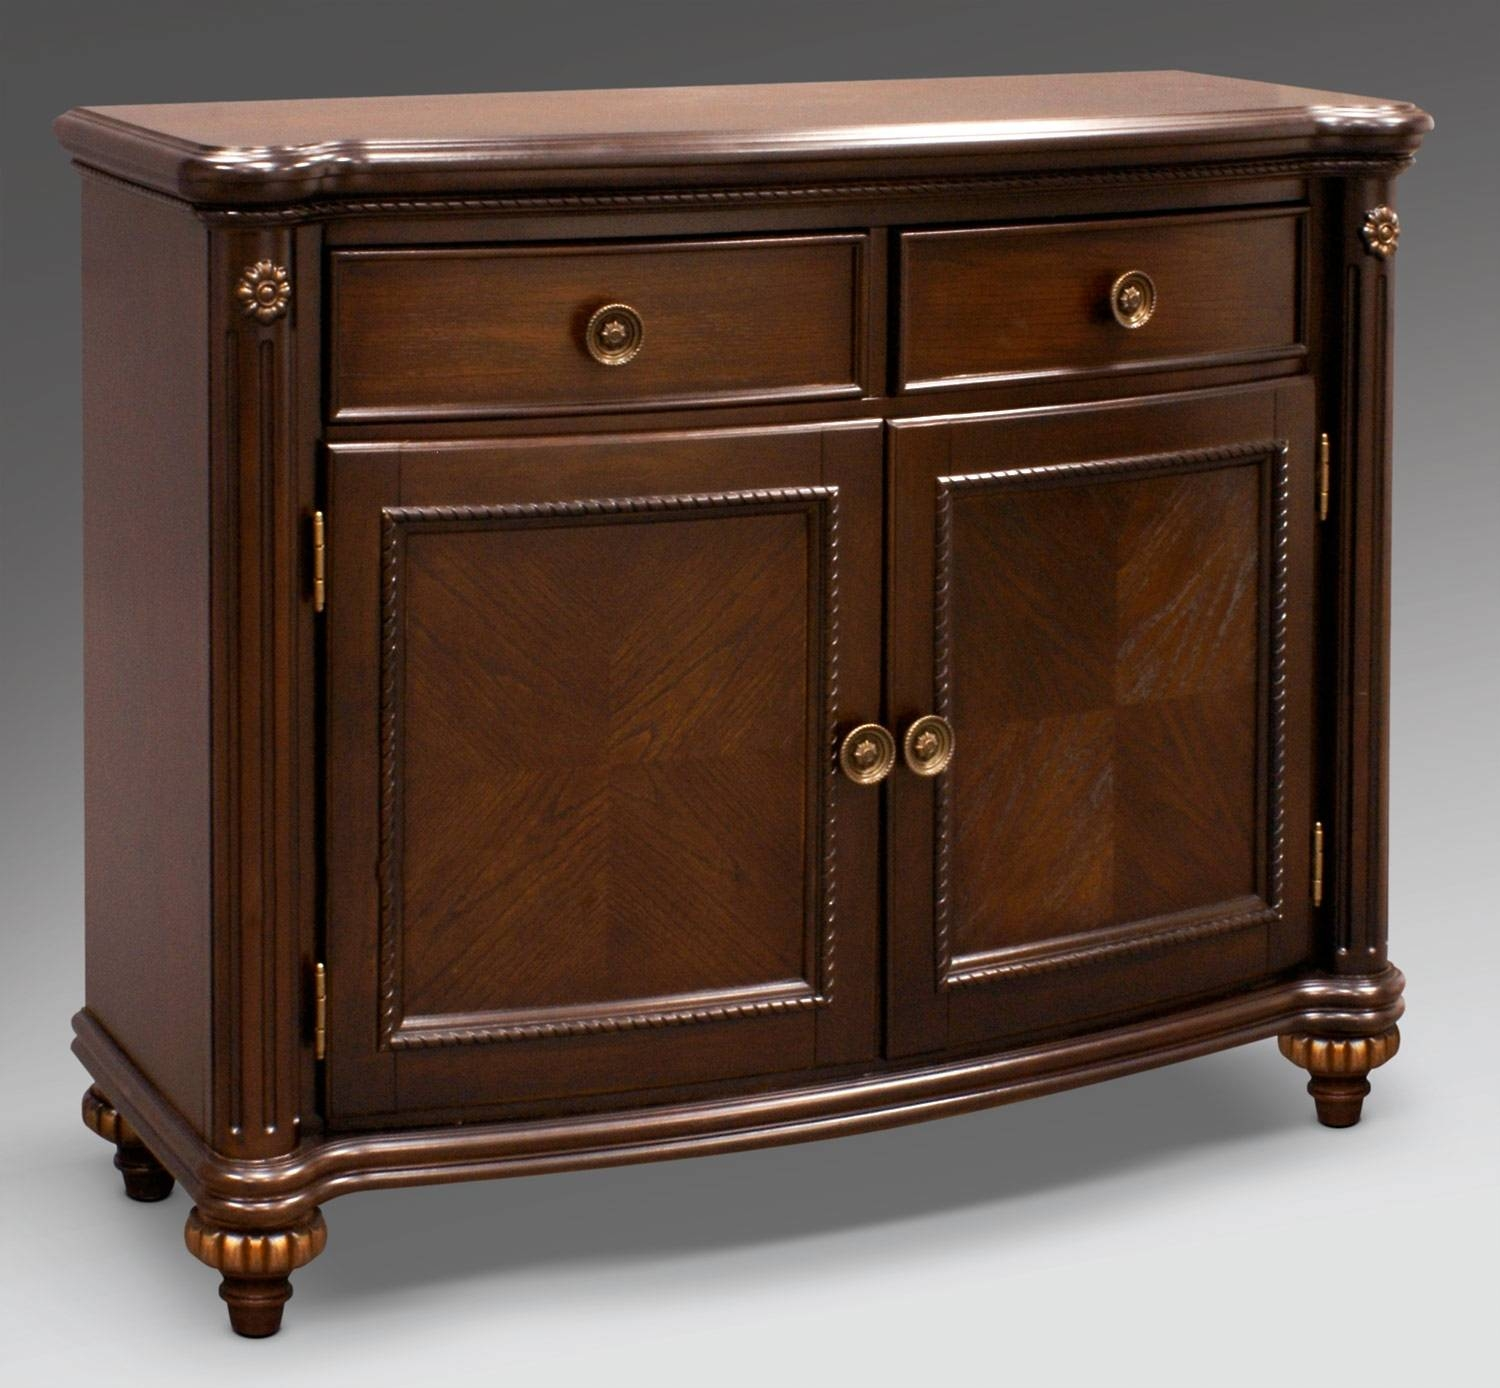 Dining Room Servers Buffet Furniture Pictures Cabinet Trends And With Recent Buffet Sideboard Servers (#6 of 15)